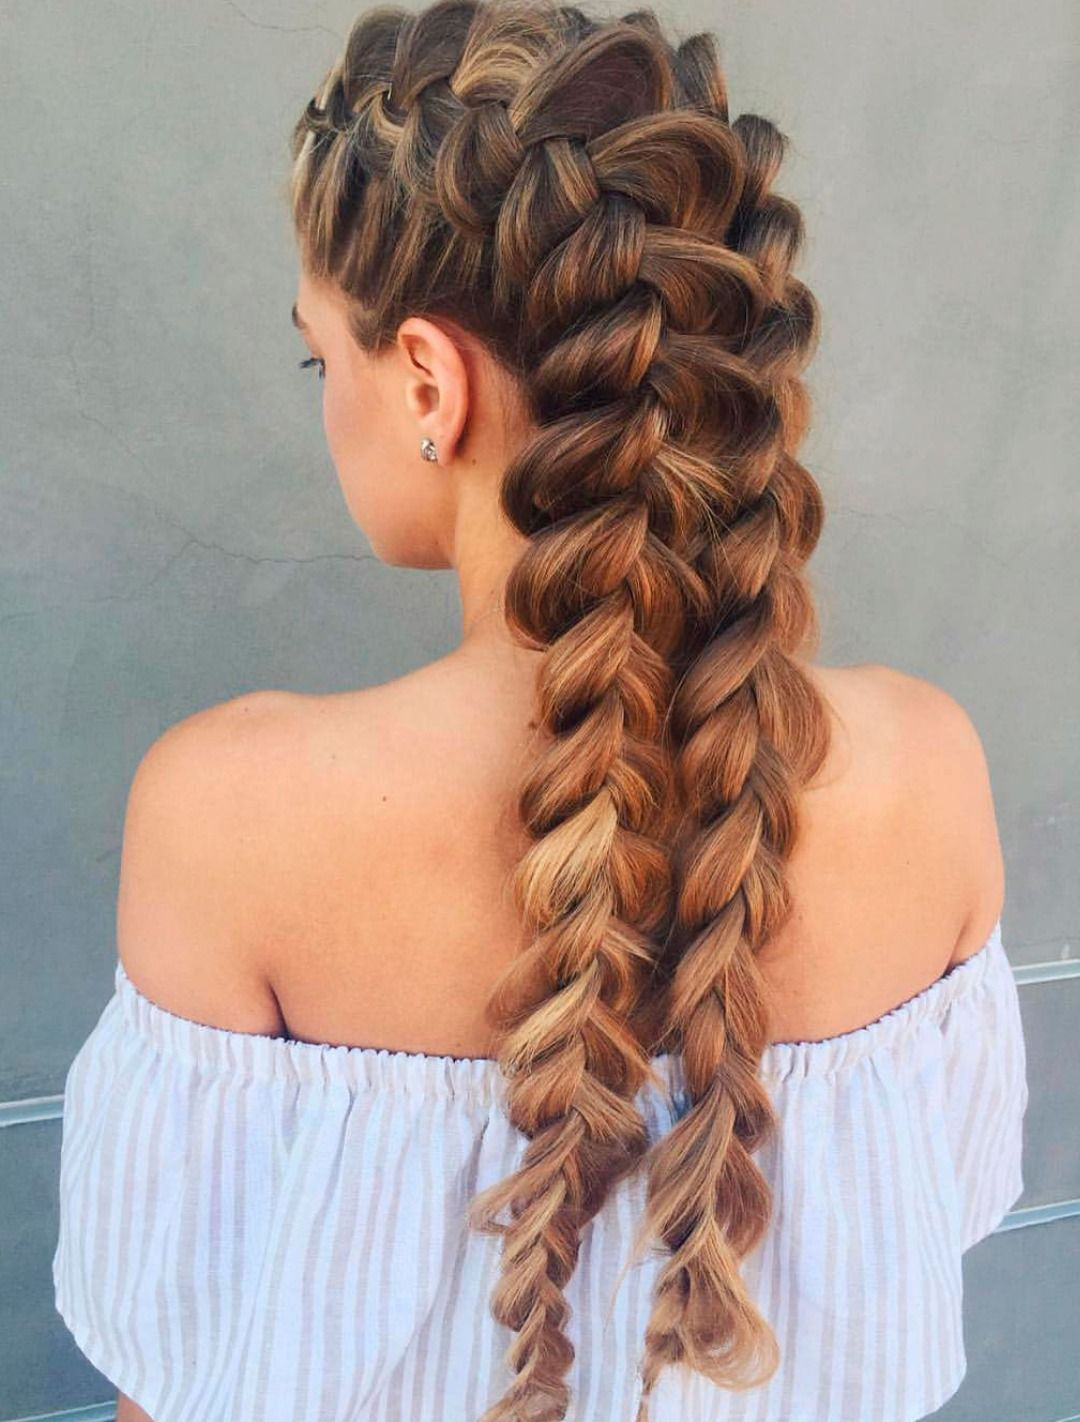 Best Pigtail Braids That Suit Every Hair Type Braided Hairstyles Braids For Long Hair Long Hair Styles